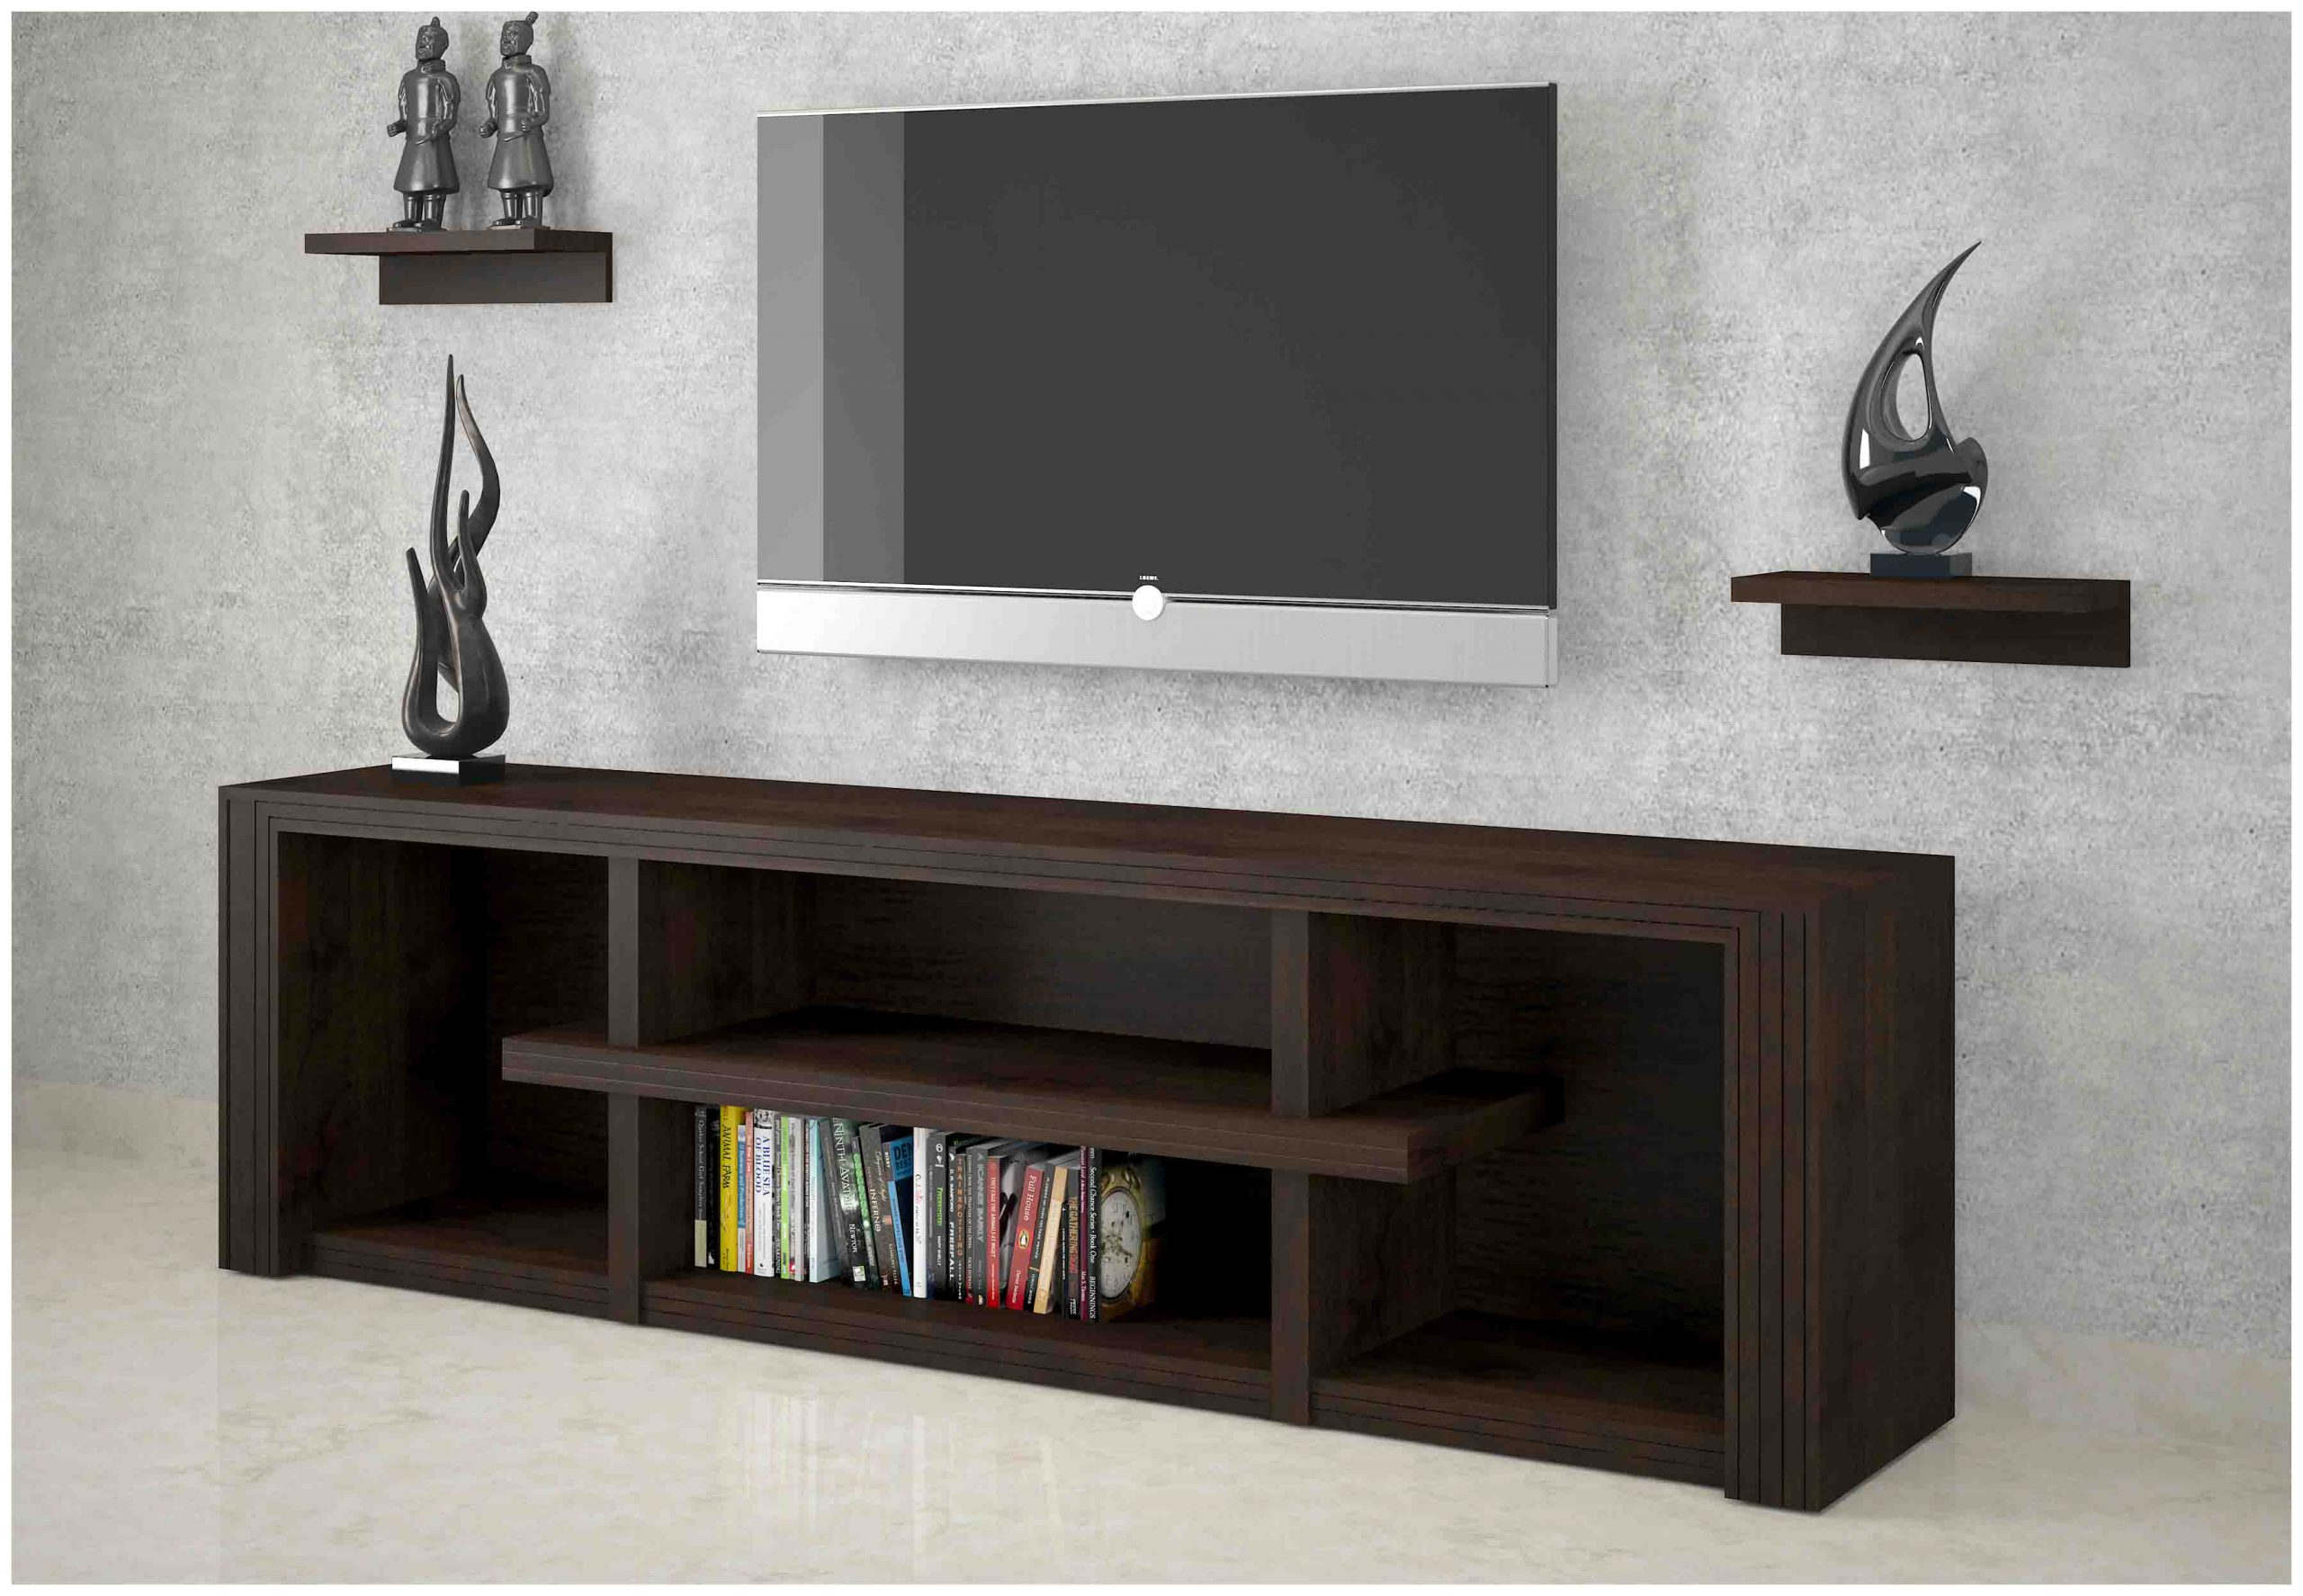 Best Furniture shop in malappuram